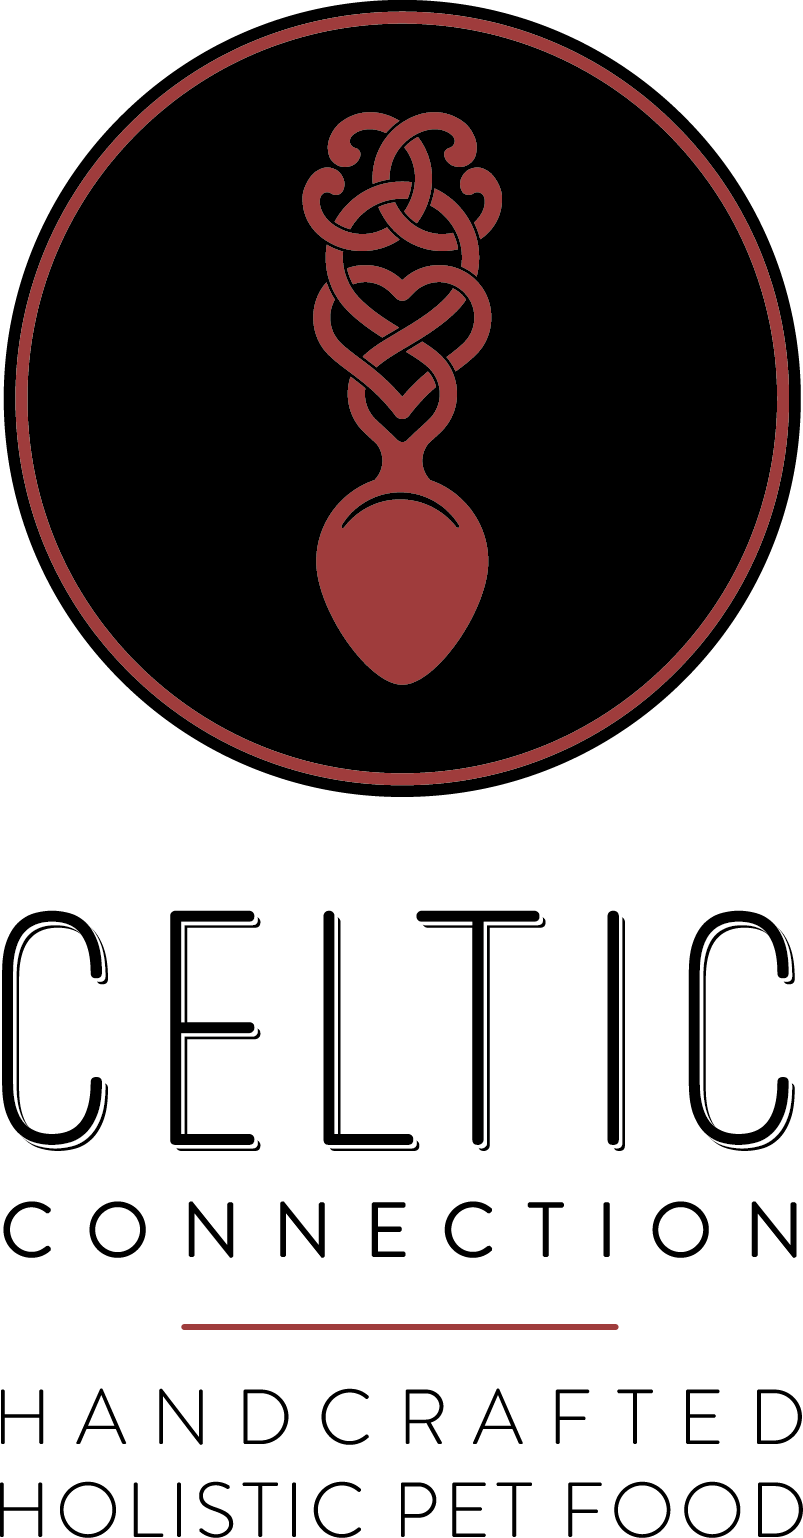 CELTIC CONNECTION